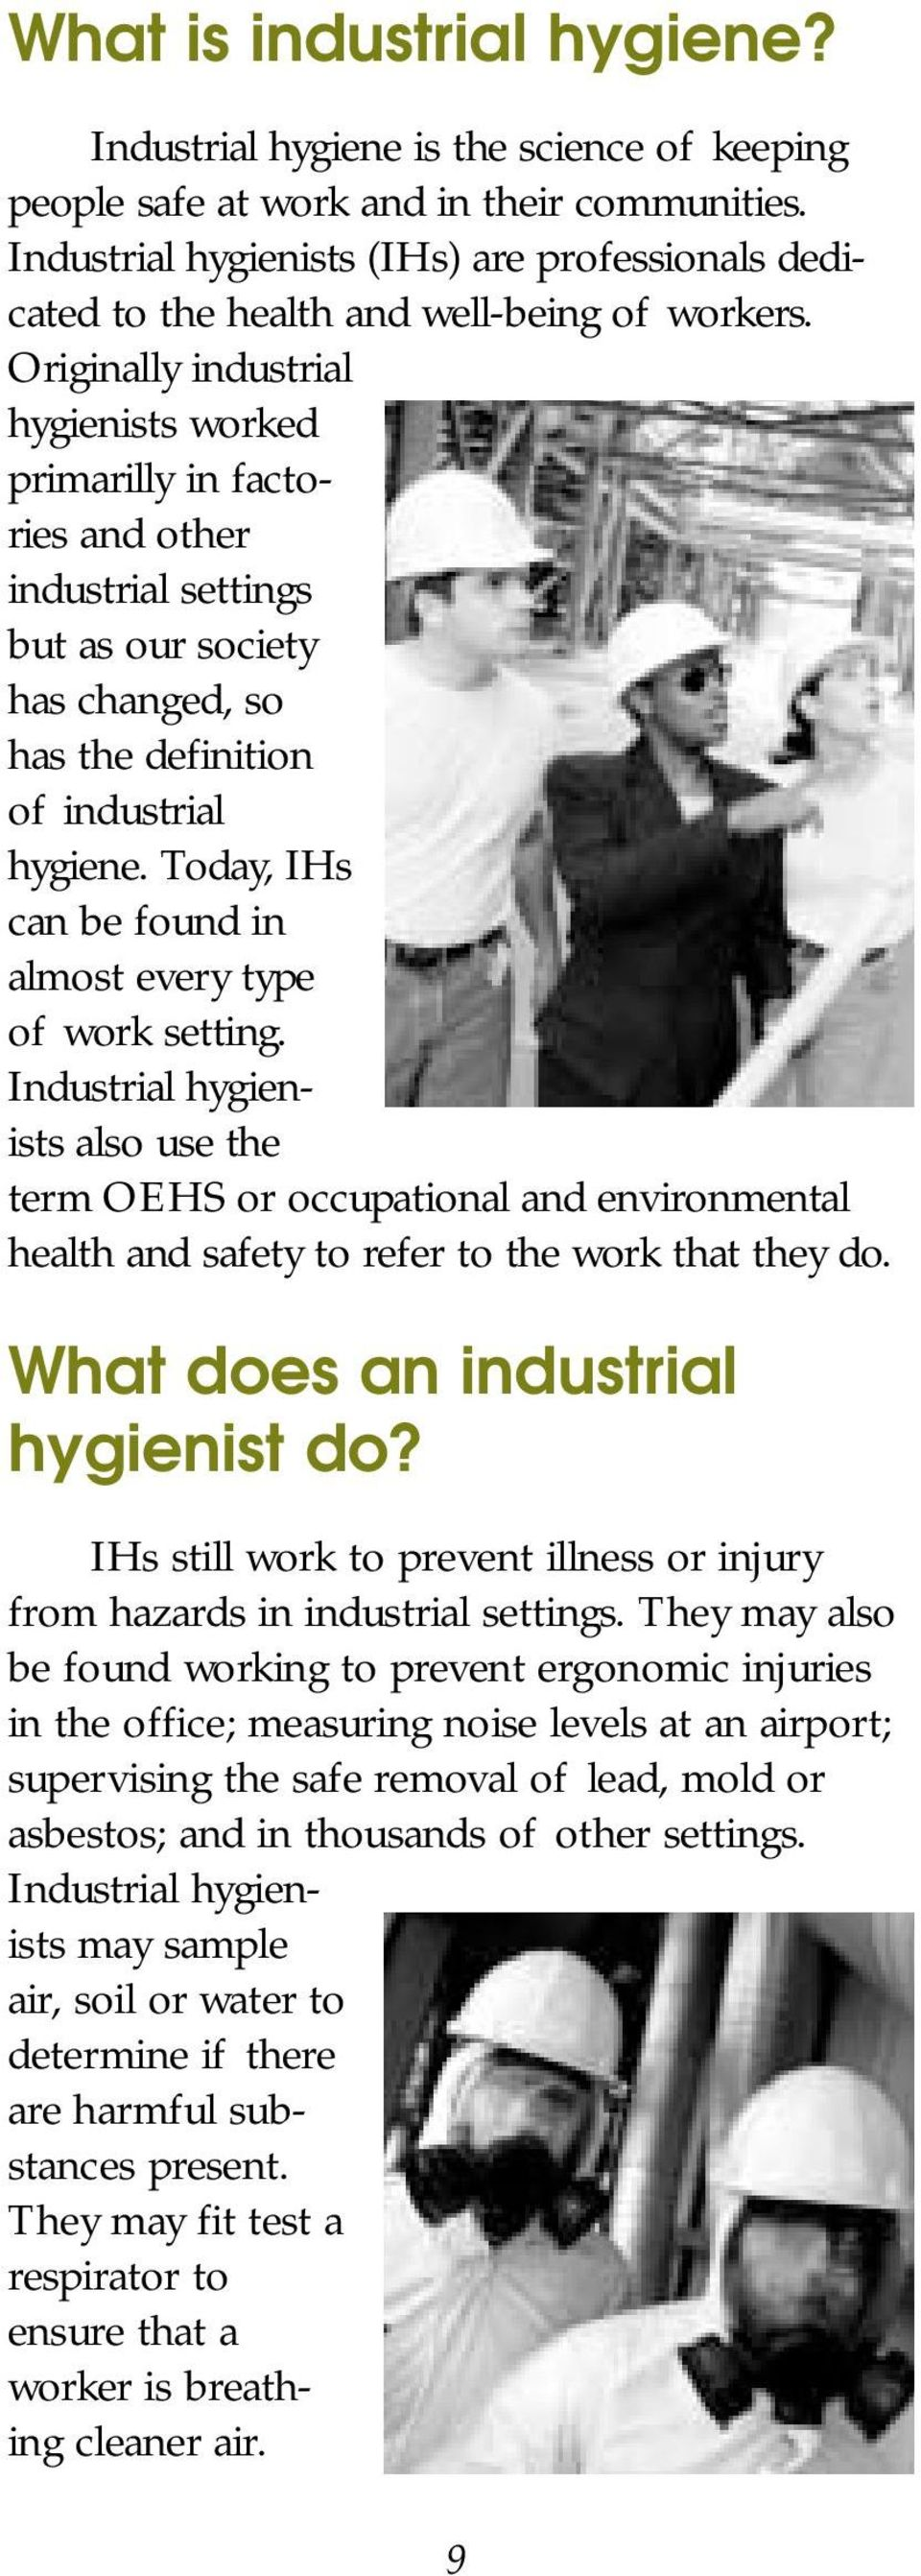 Originally industrial hygienists worked primarilly in factories and other industrial settings but as our society has changed, so has the definition of industrial hygiene.